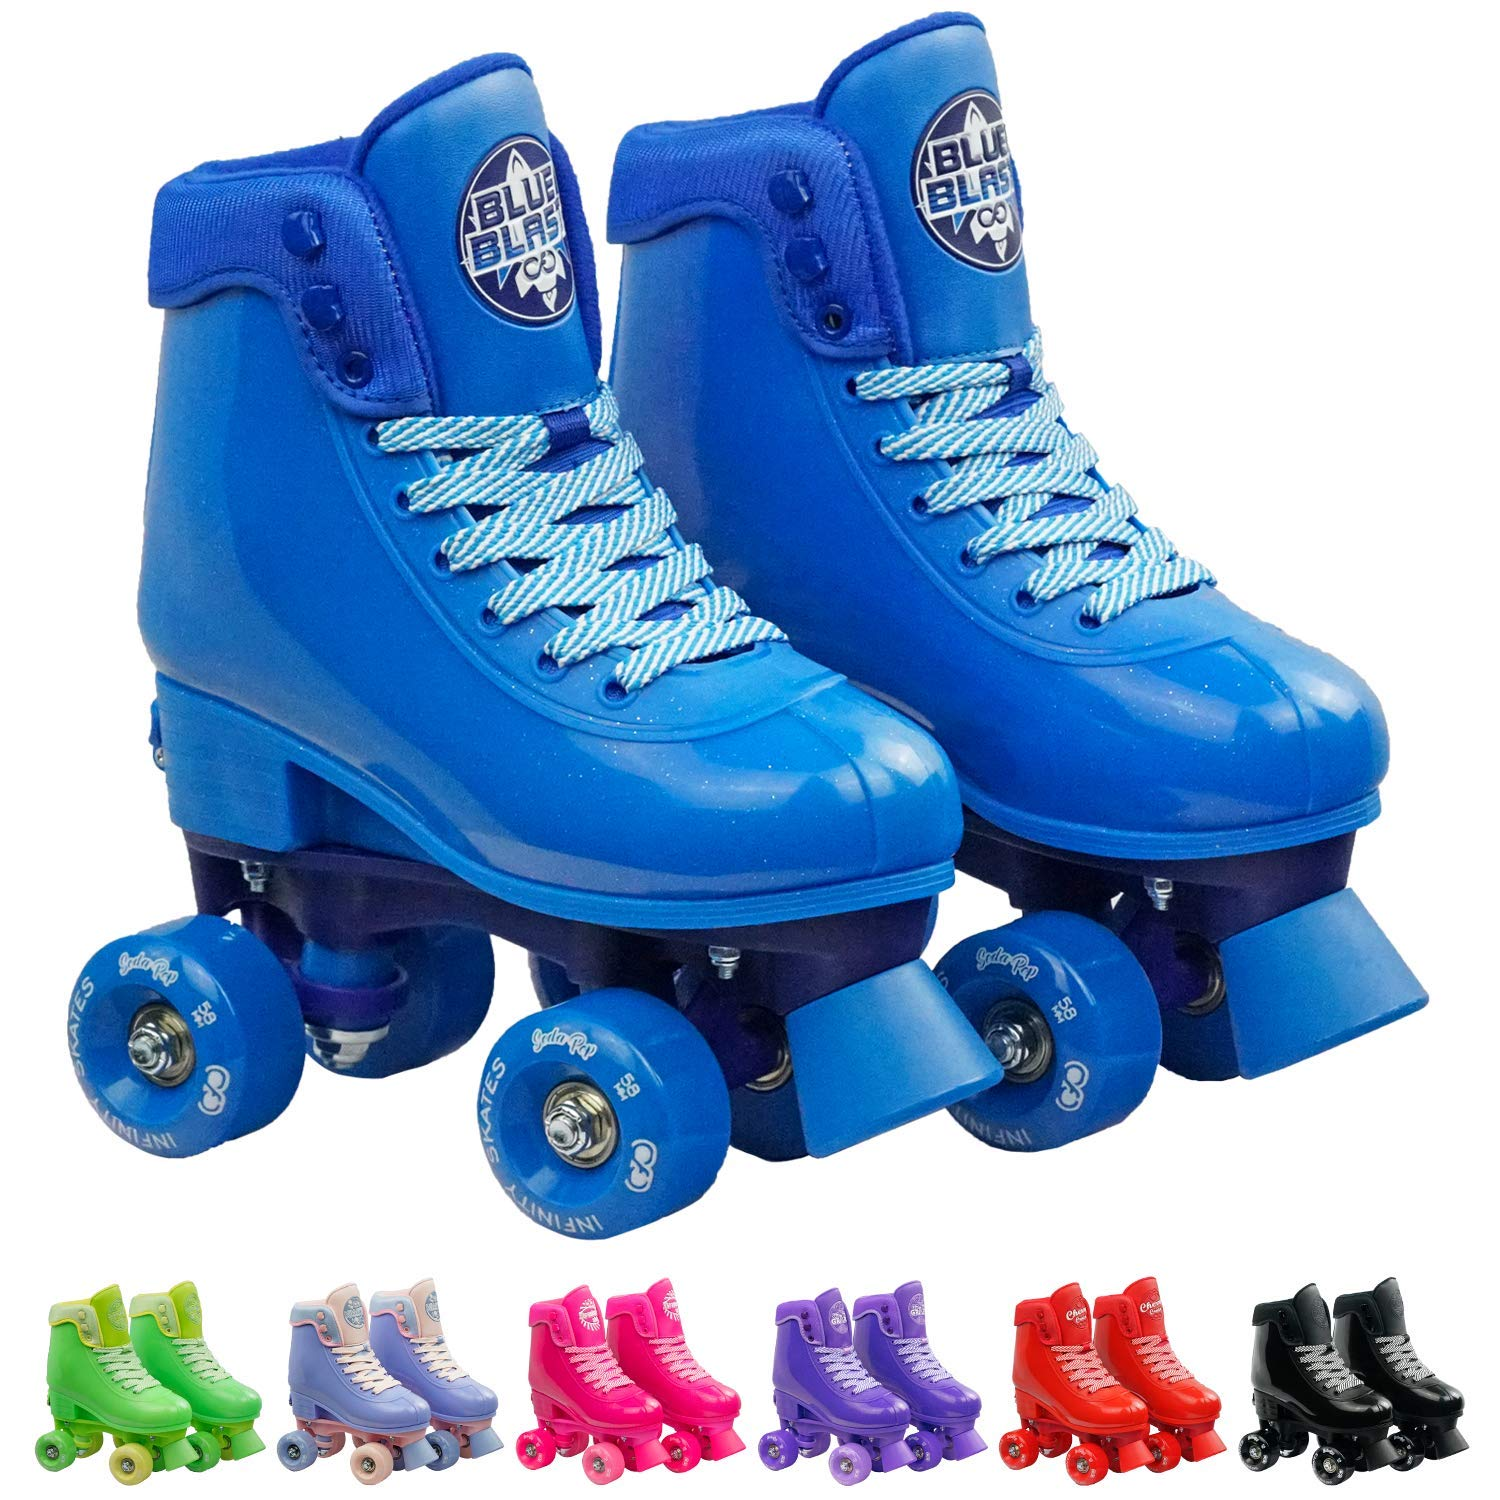 Infinity Skates Adjustable Roller Skates for Girls and Boys - Soda Pop Series (Blue/Small)